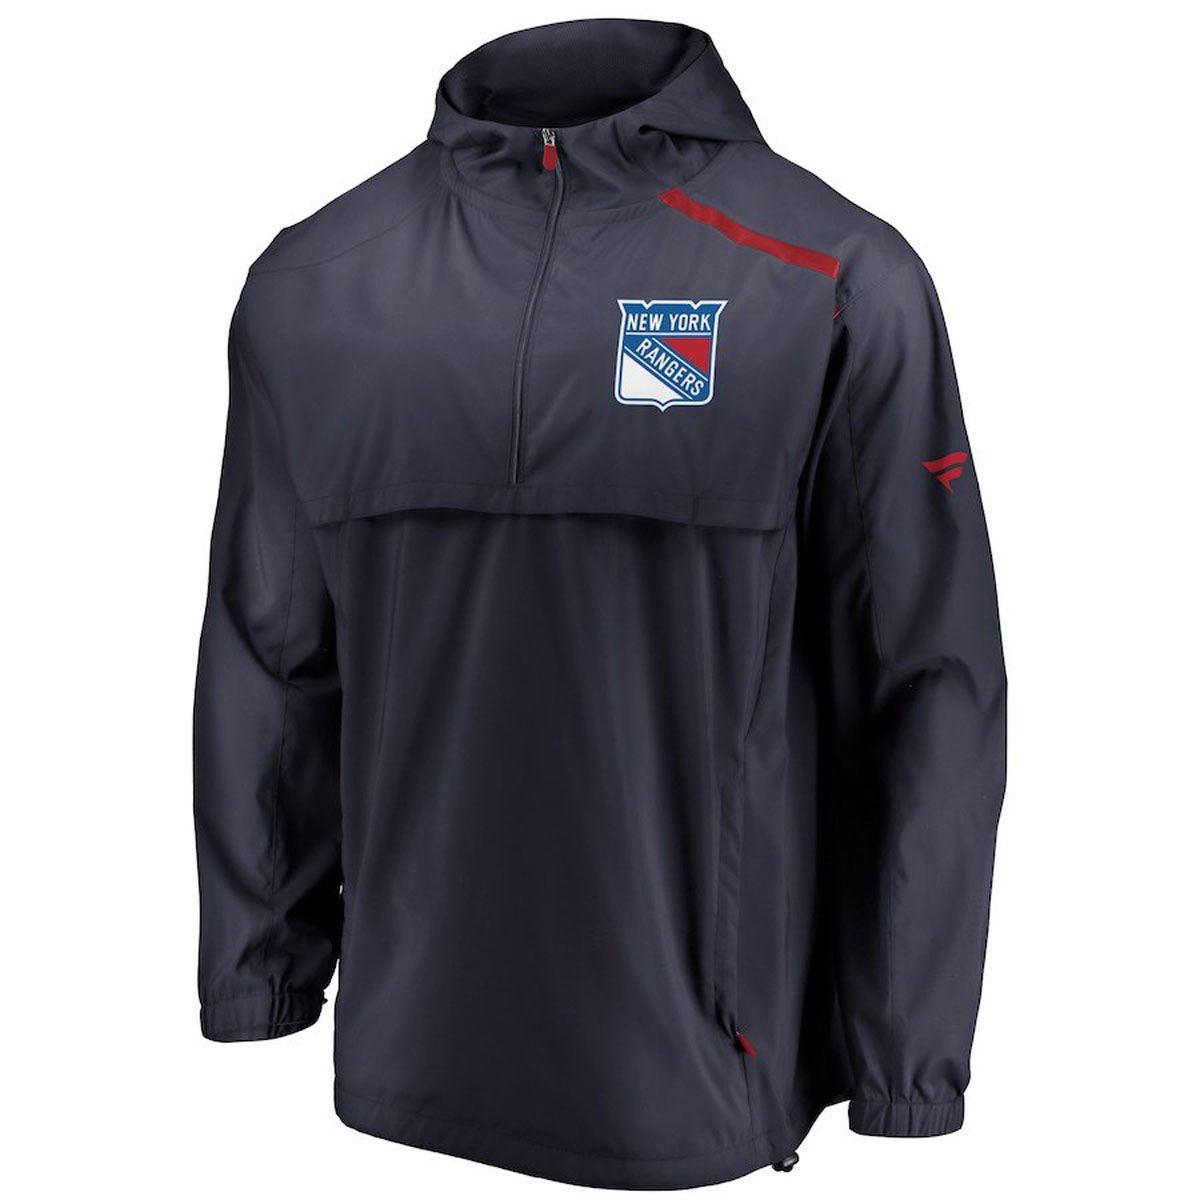 New York Rangers Authentic Pro Rinkside 1/4 Zip Anorak Jacket